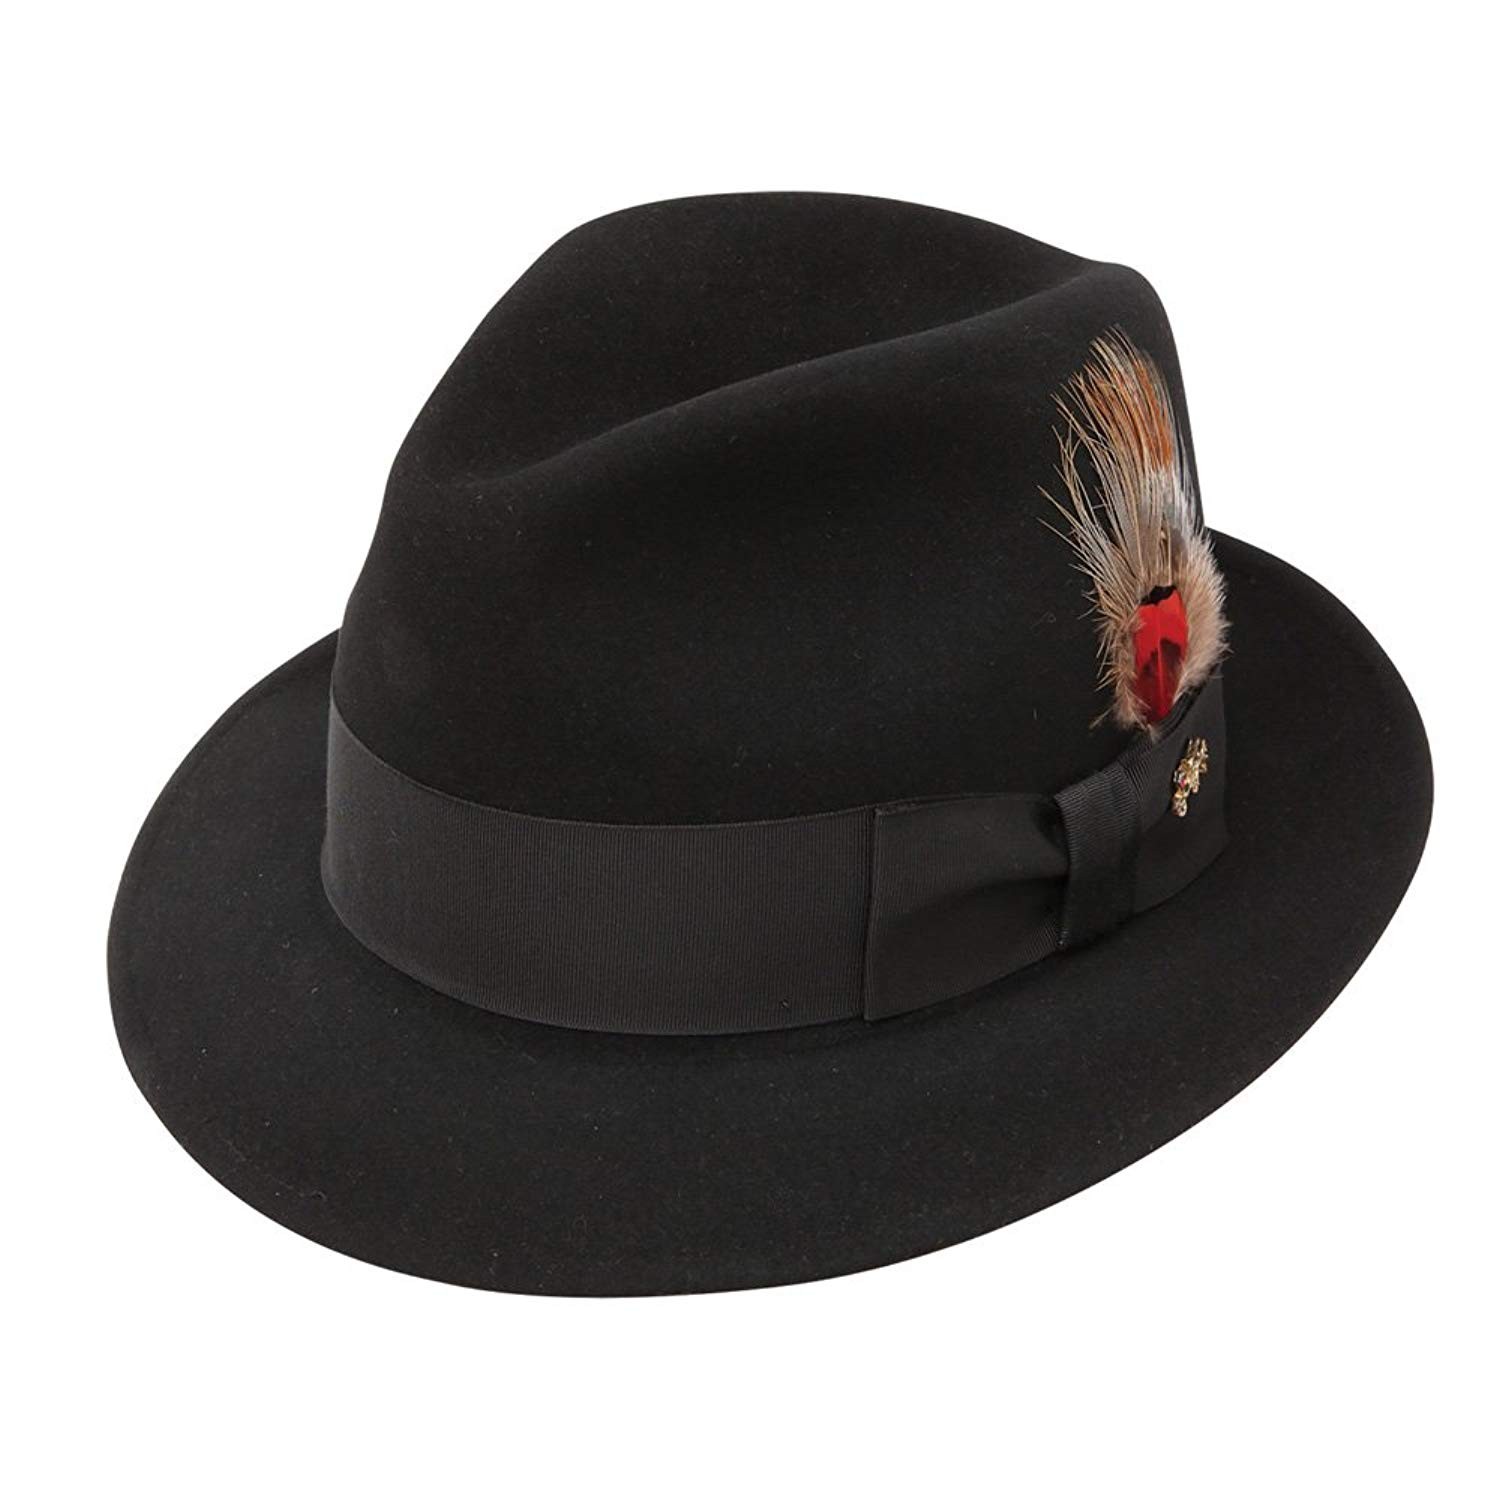 789da240996 Get Quotations · Stetson and Dobbs DFJET7 Men's Jet 707 18 Brim Fedora Hat,  Black - 7 1